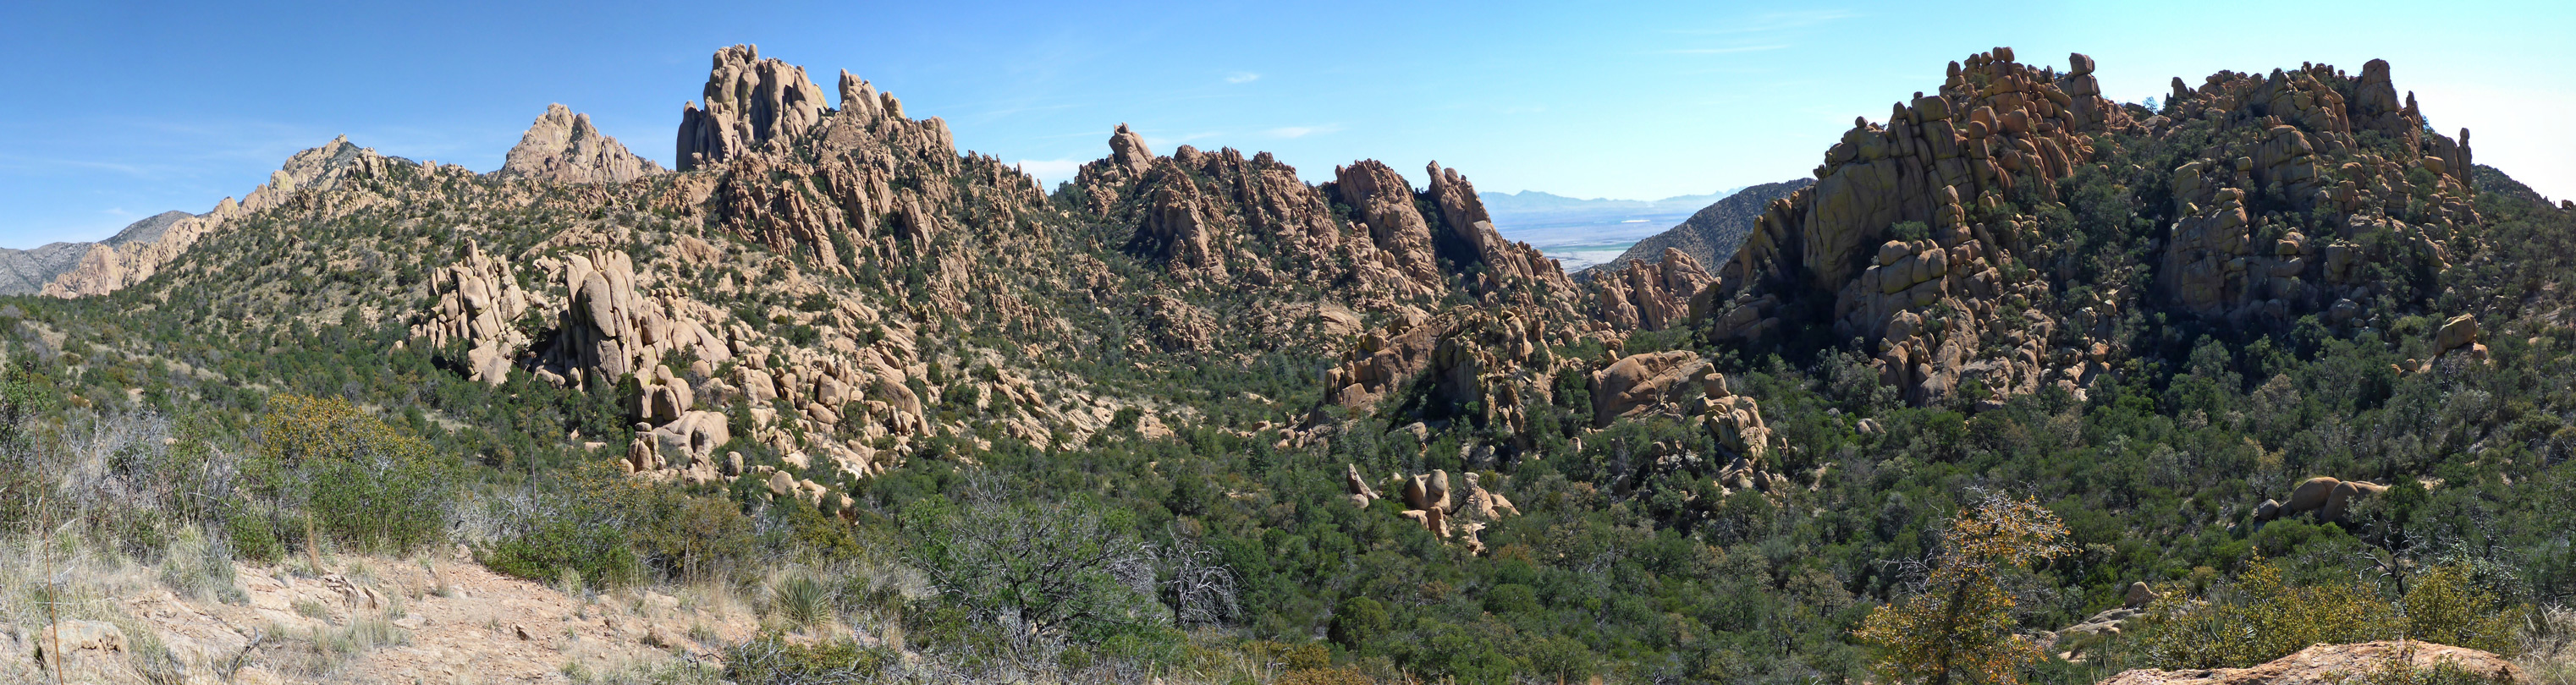 Panorama of Cochise Stronghold